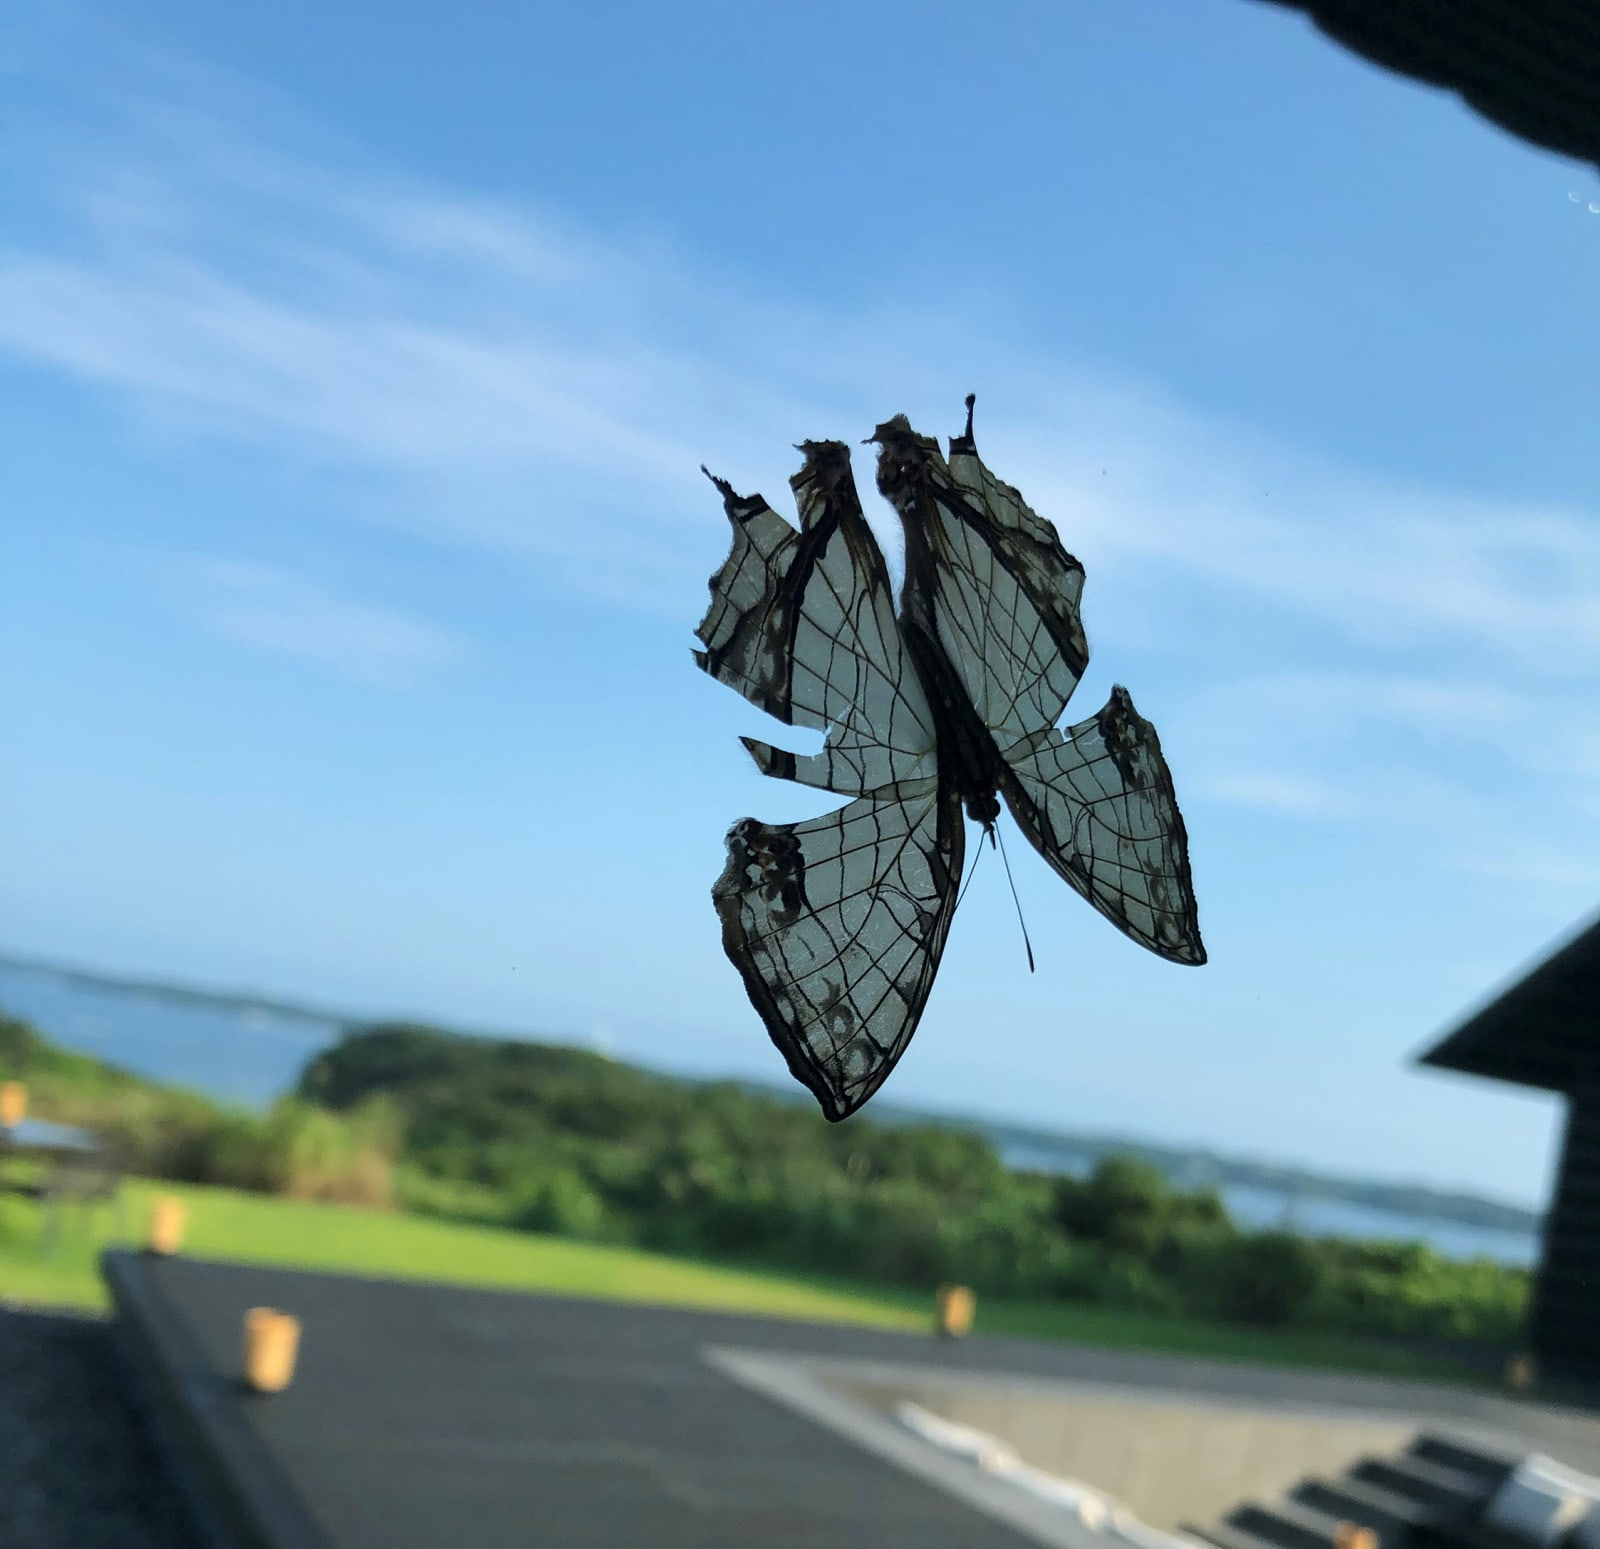 Photograph of a butterfly on a dashboard by Gabriel Orozco